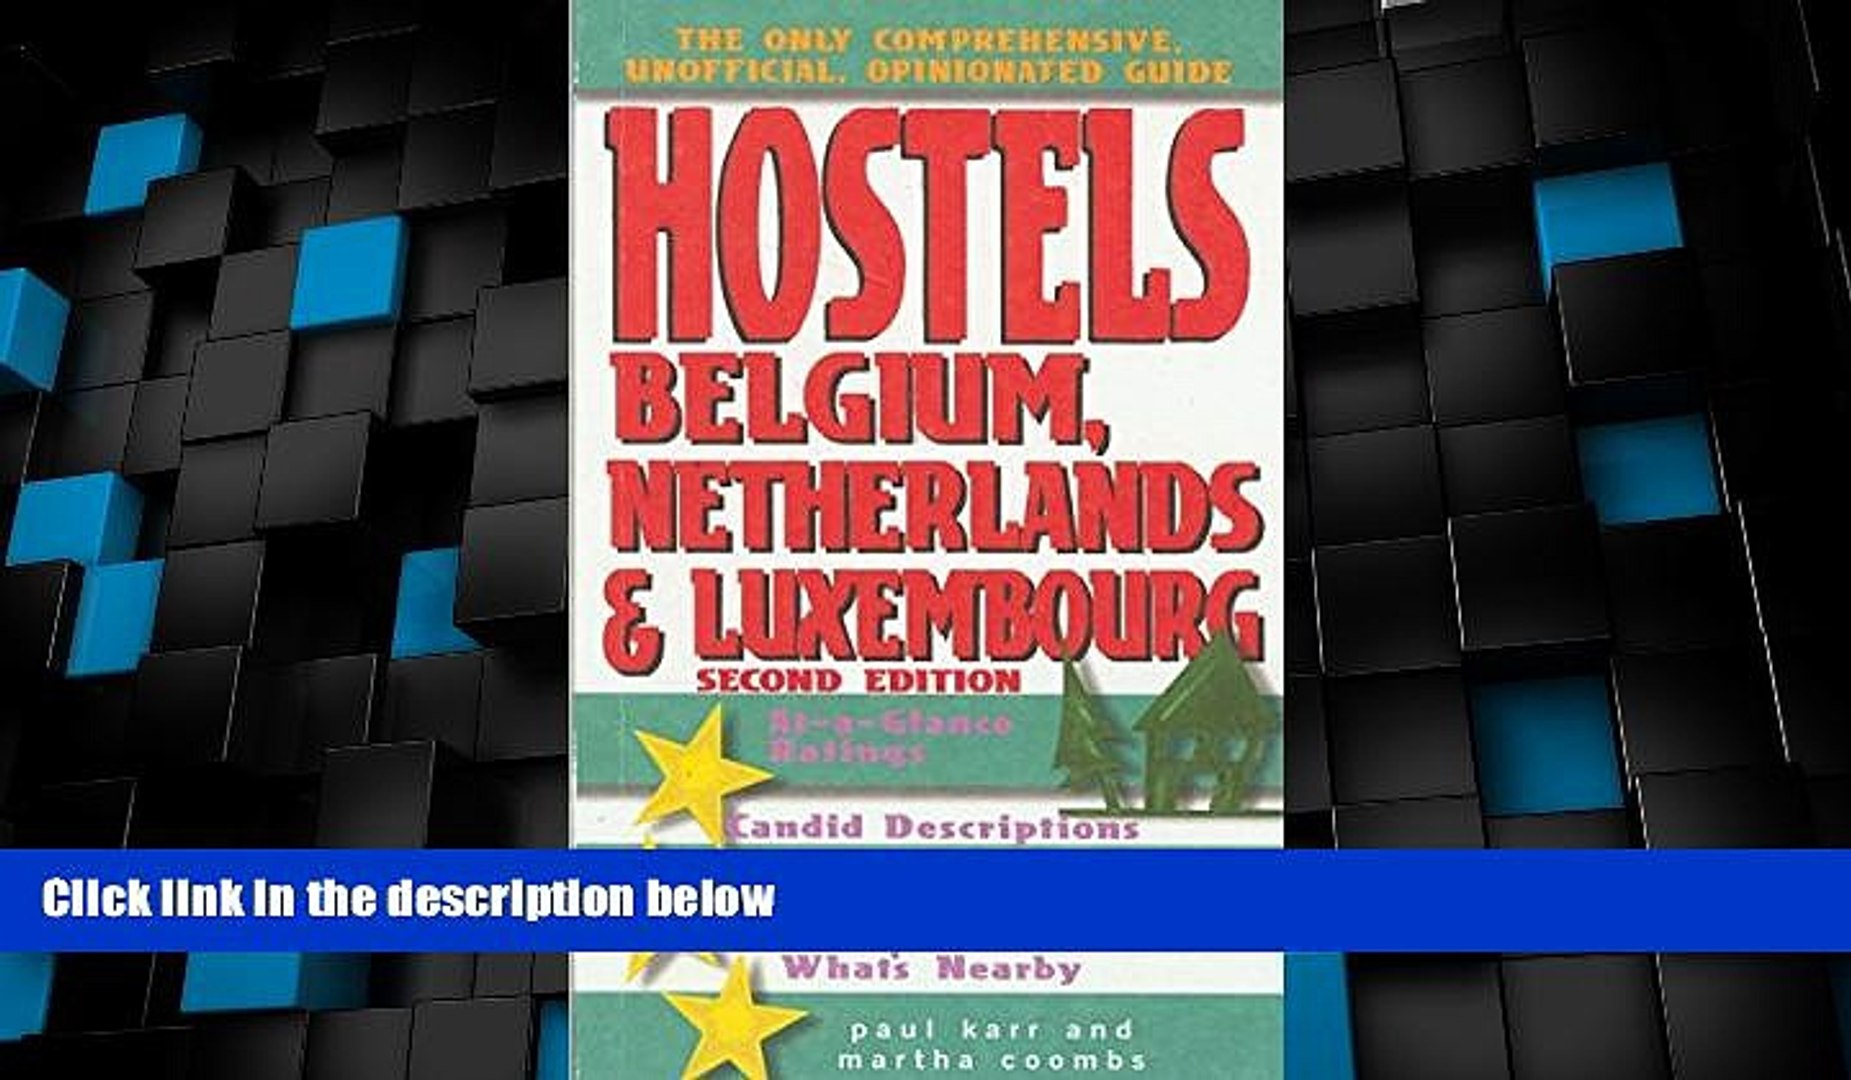 The Only Comprehensive Opinionated Guide Unofficial Hostels U.S.A.